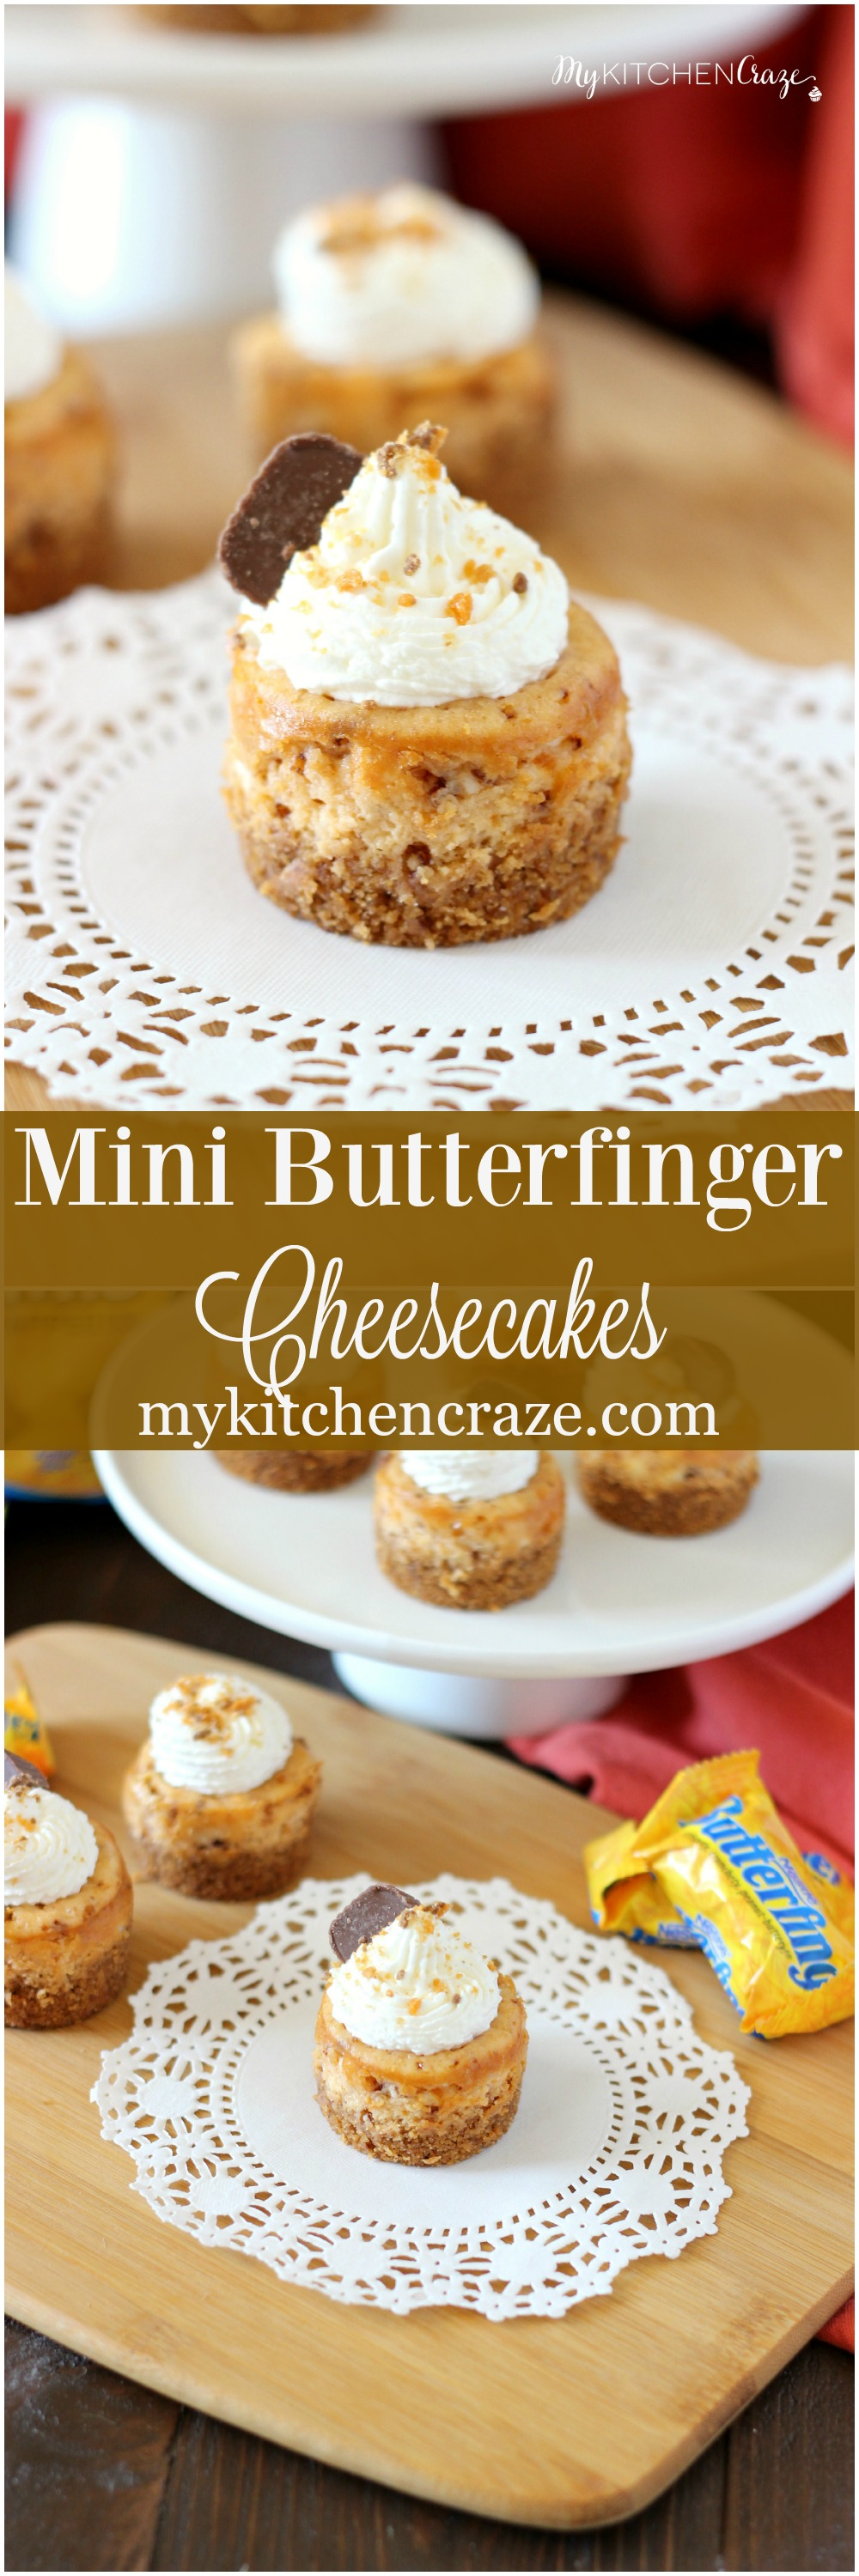 Butterfinger Mini Cheesecakes Recipe